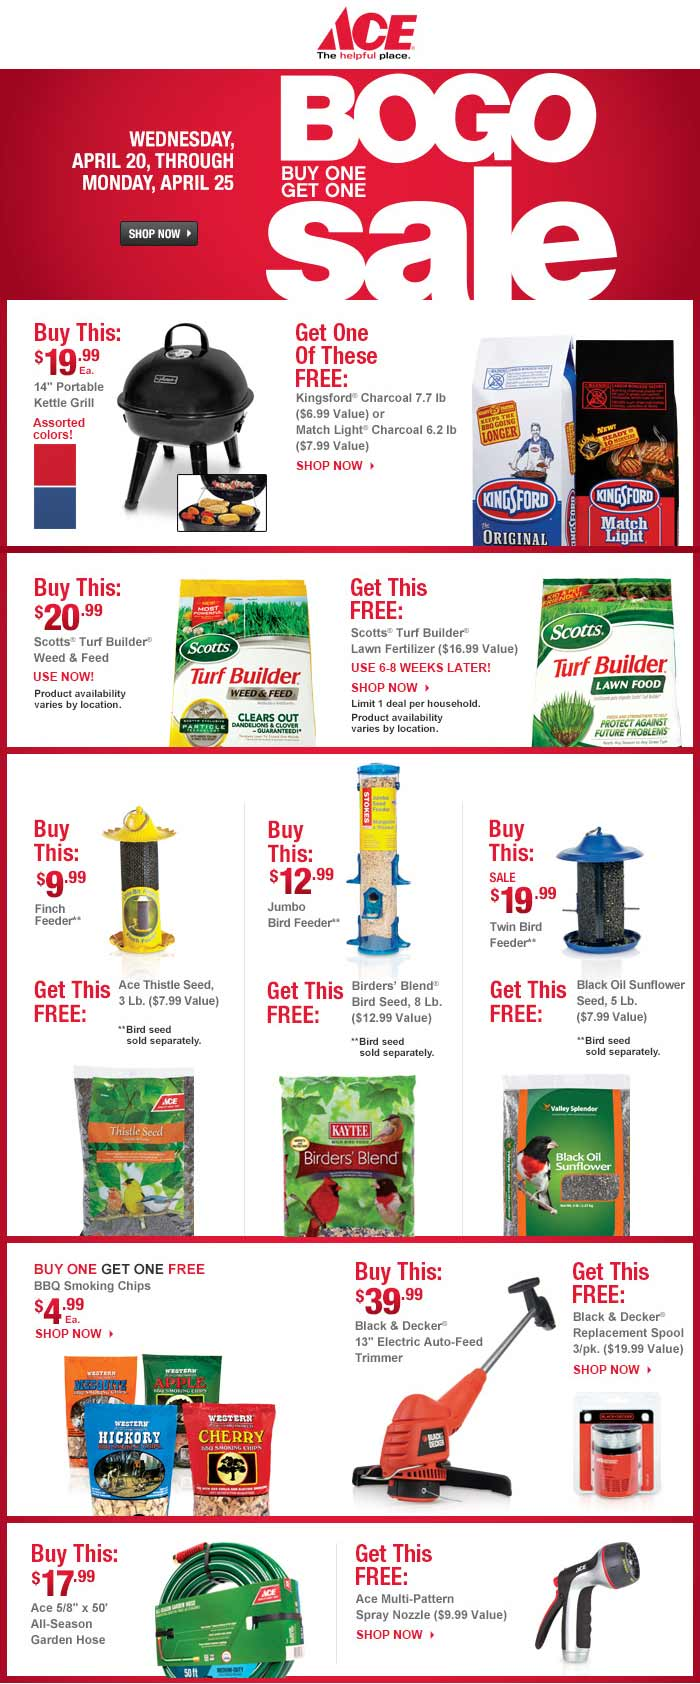 Ace Hardware Coupon March 2018 Spring bogo sale going on in-store & online at Ace Hardware